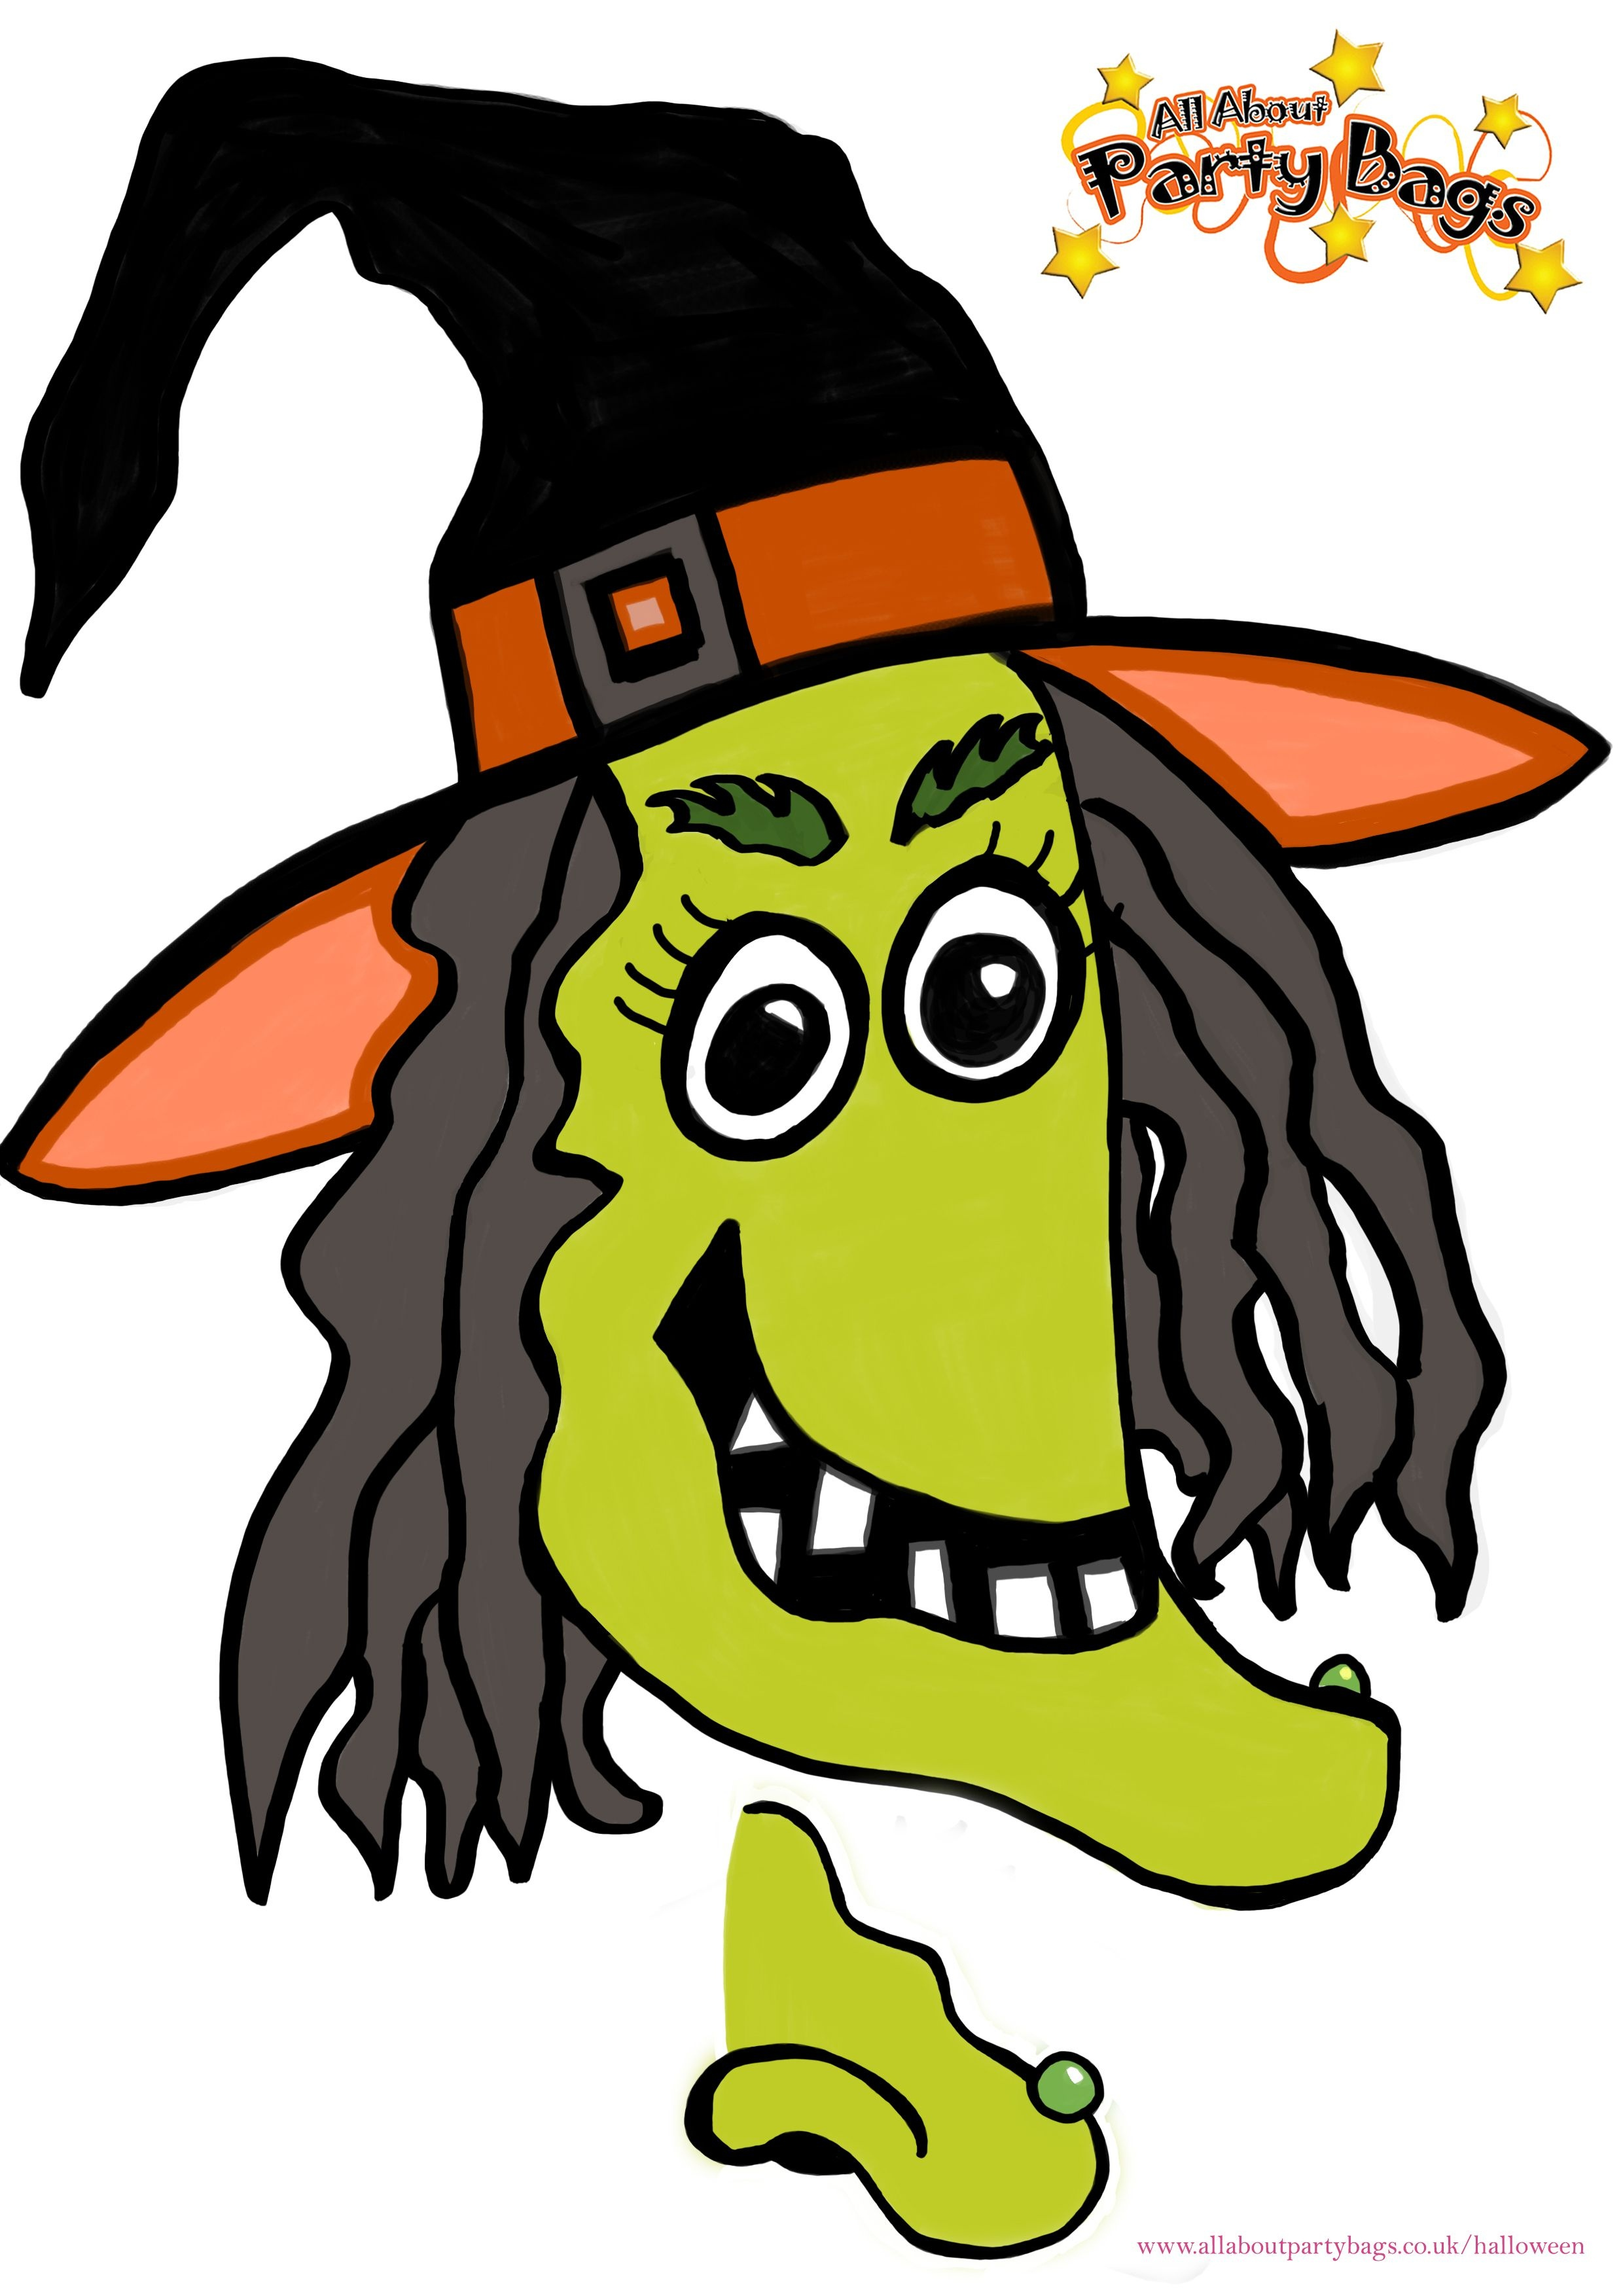 Free Printable Pin The Nose On The Witch Game. | Party! | Halloween - Free Printable Pictures Of Witches